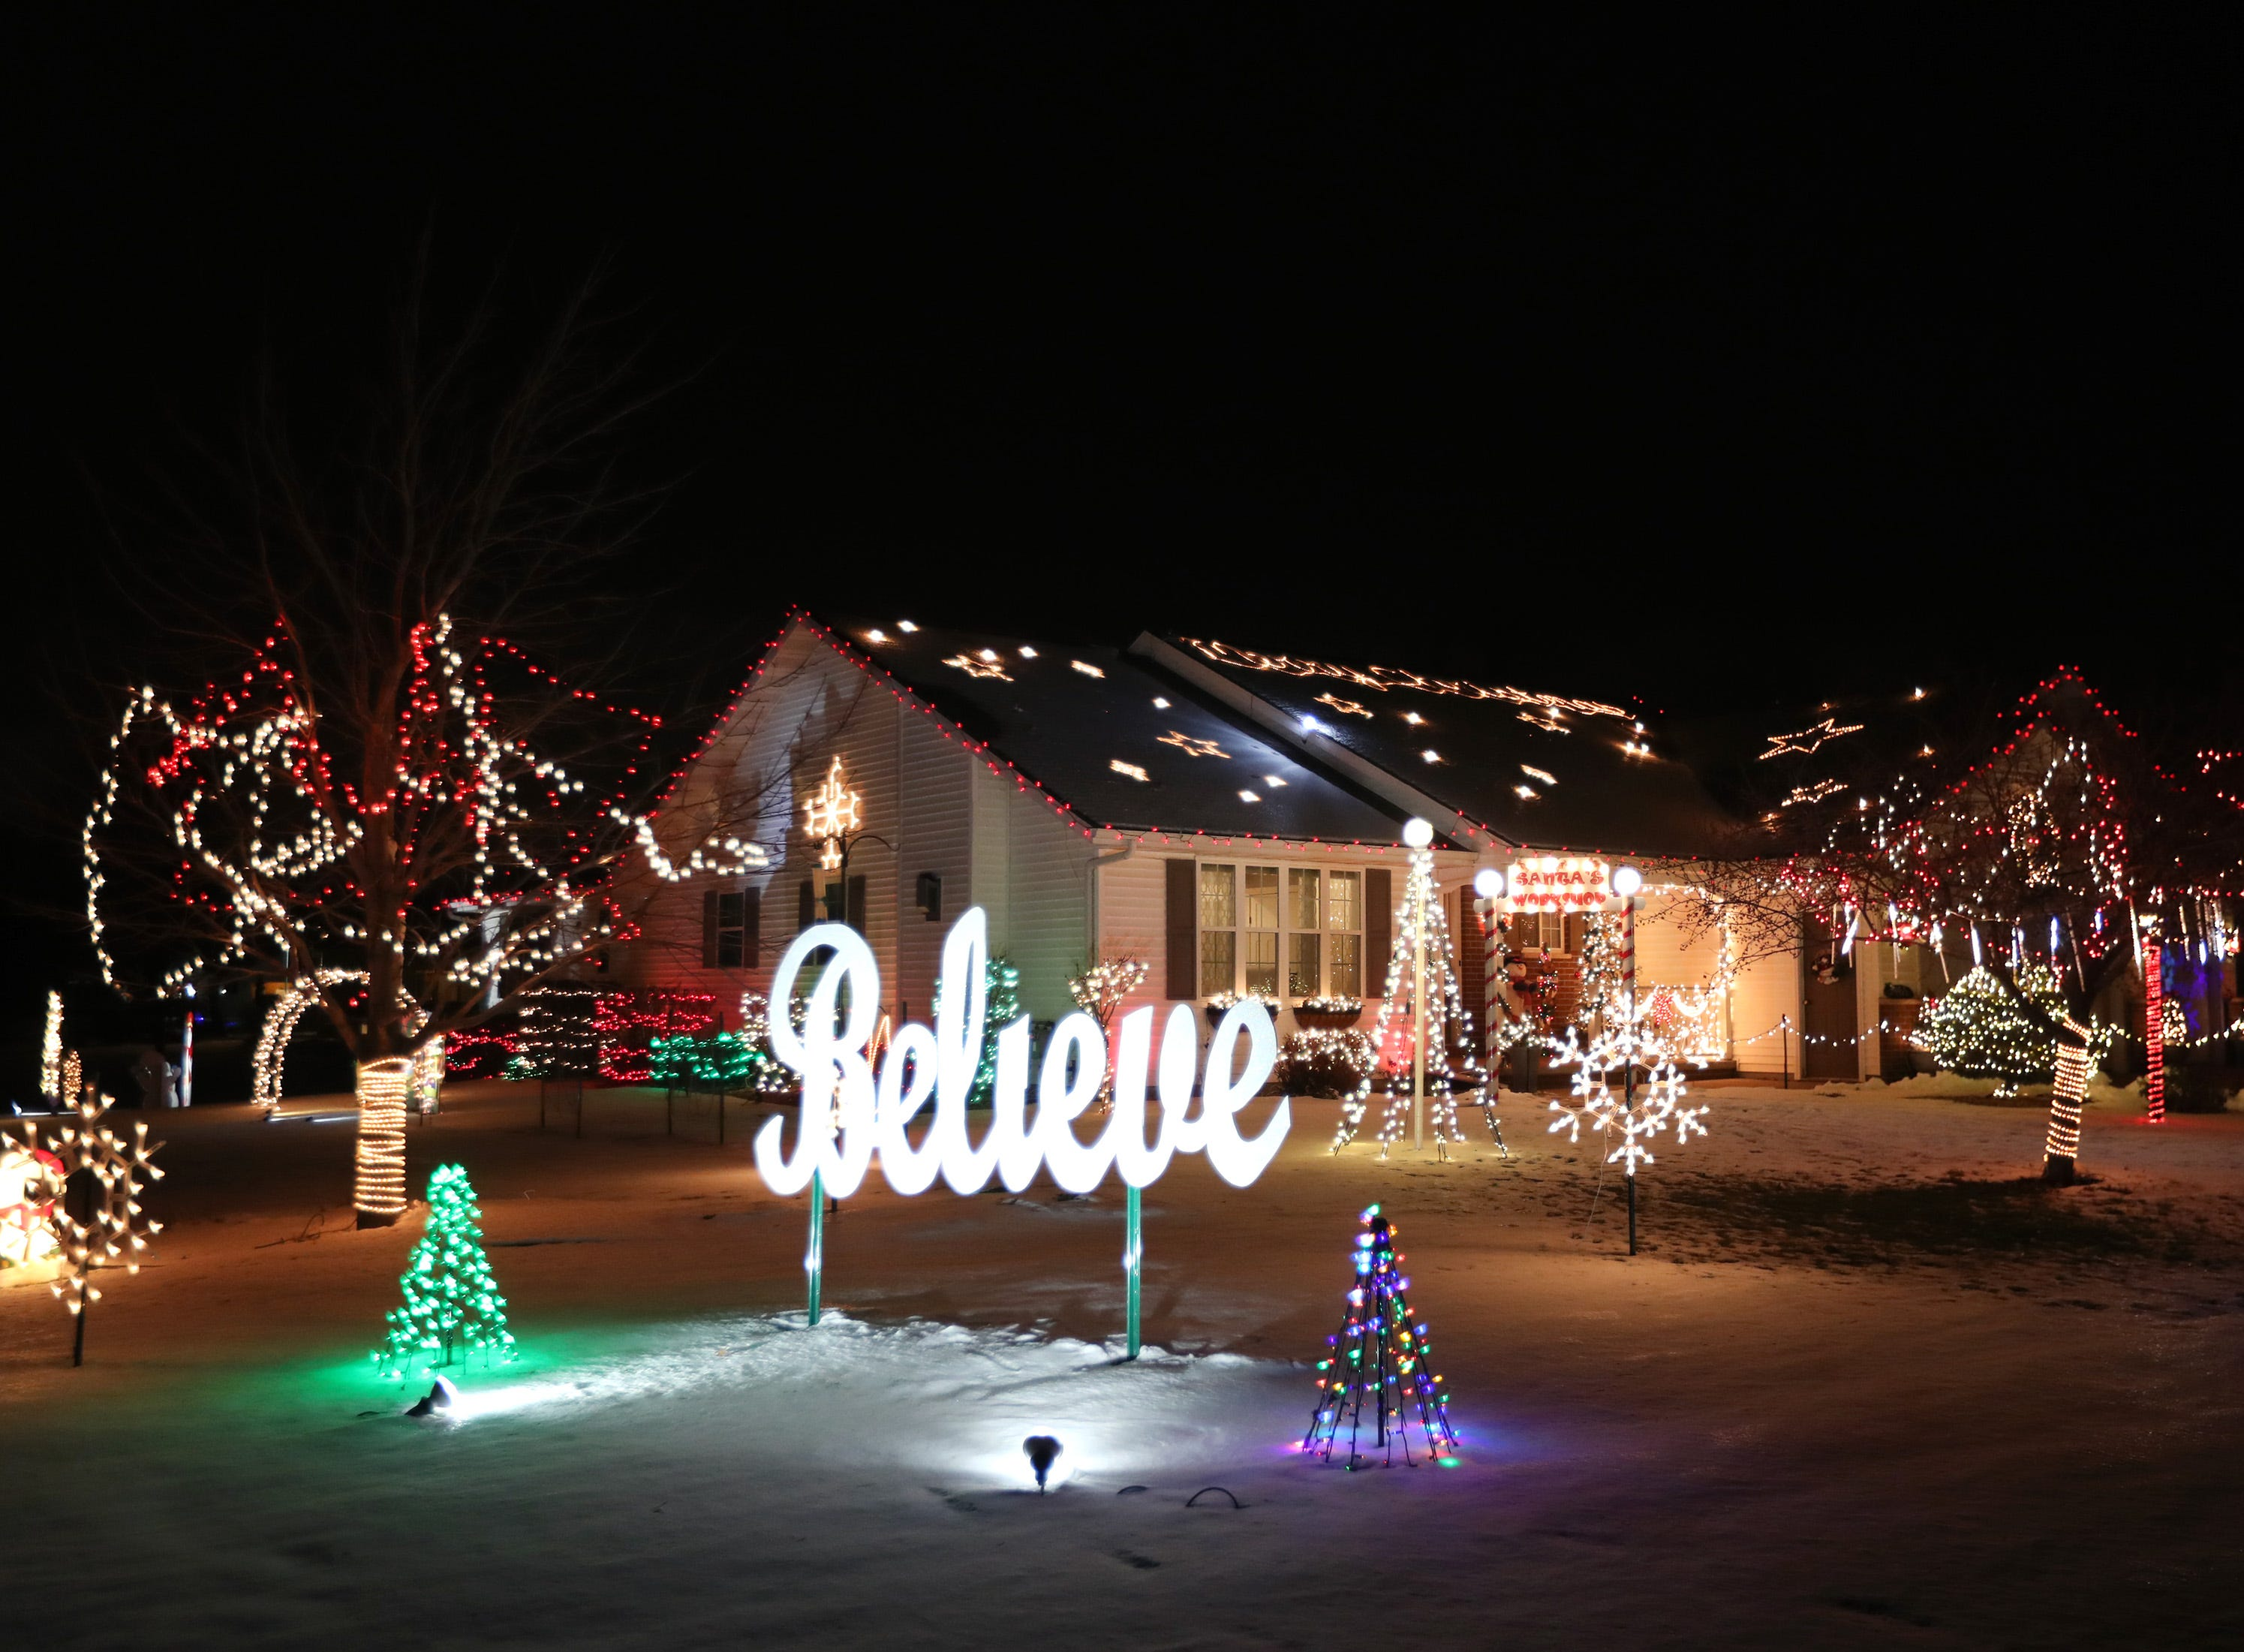 A Christmas light display on the 9400 block of Sara Lane Wednesday Dec. 5, 2018, in Darboy, Wis.